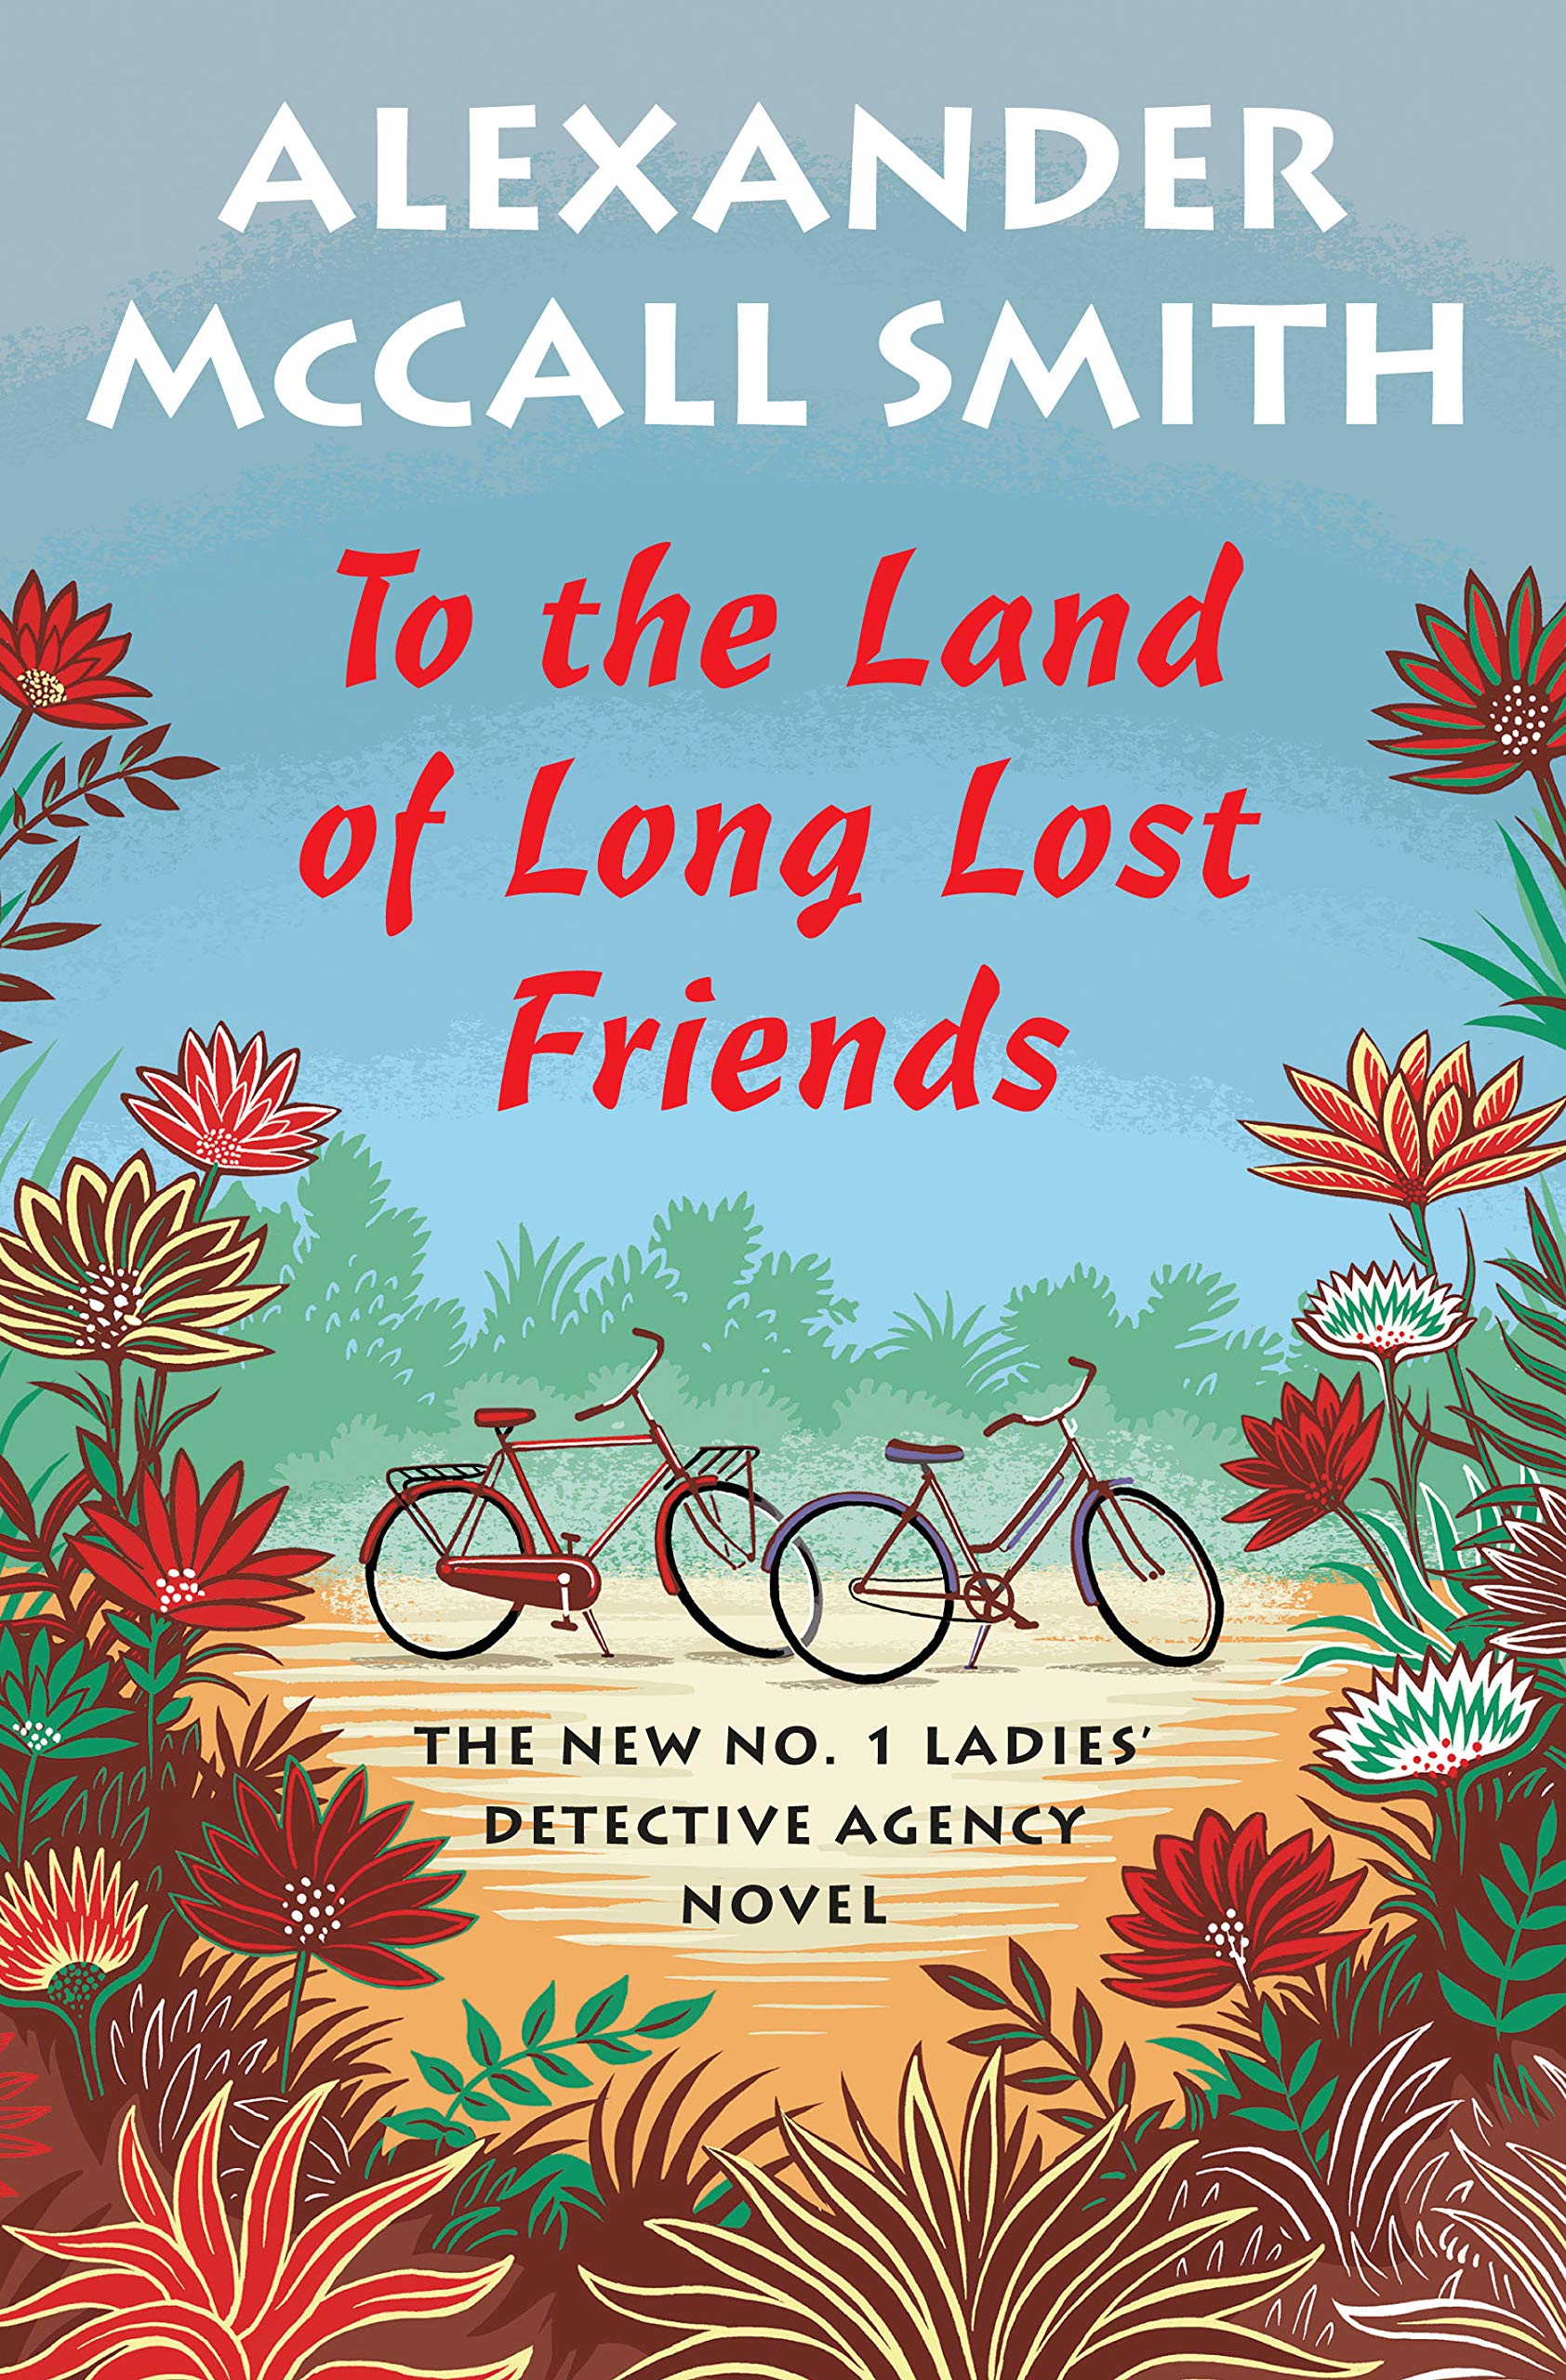 To the Land of Long Lost Friends: No. 1 Ladies' Detective Agency (20) (No. 1 Ladies' Detective Agency Series) by Pantheon